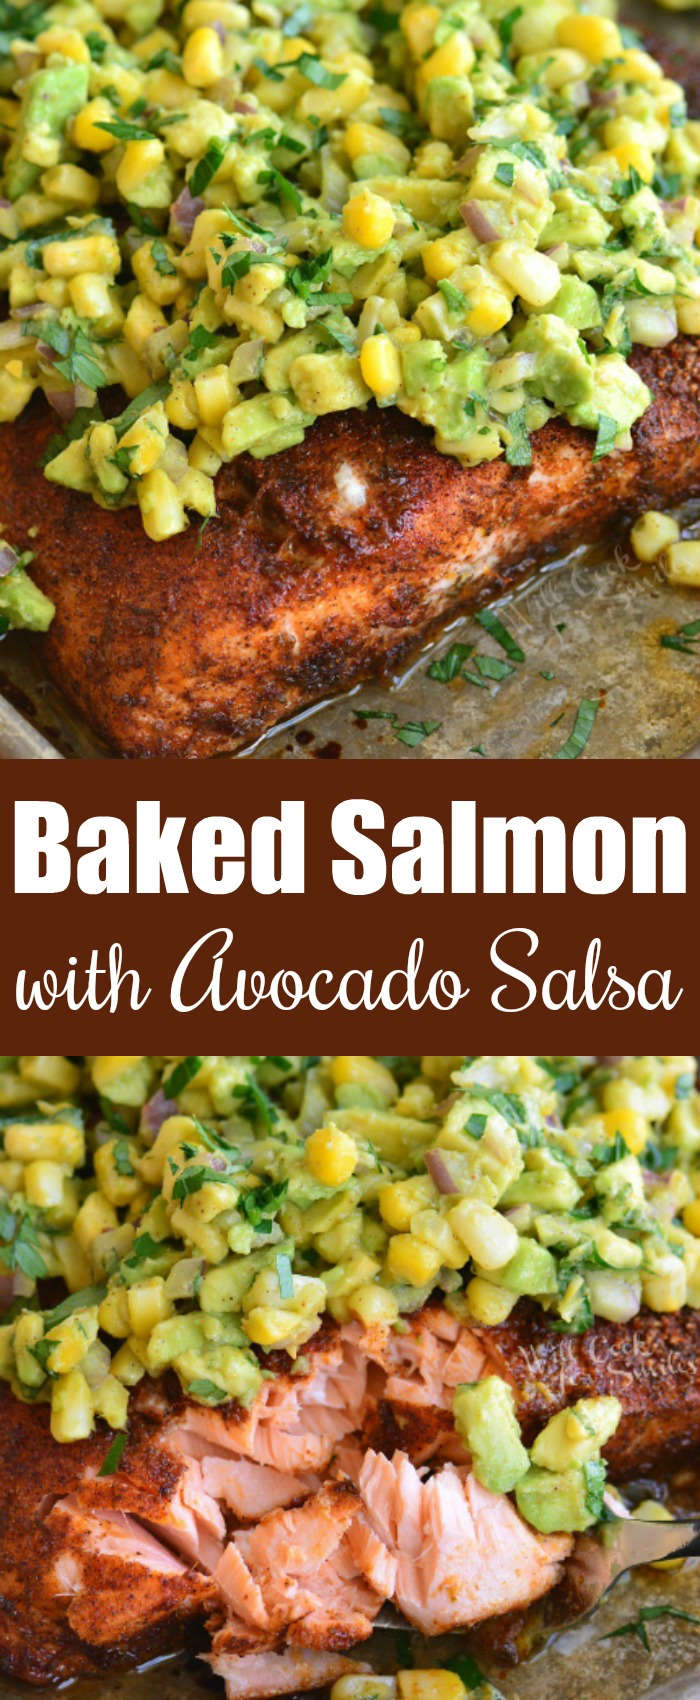 Baked Salmon with Avocado Salsa - Will Cook For Smiles